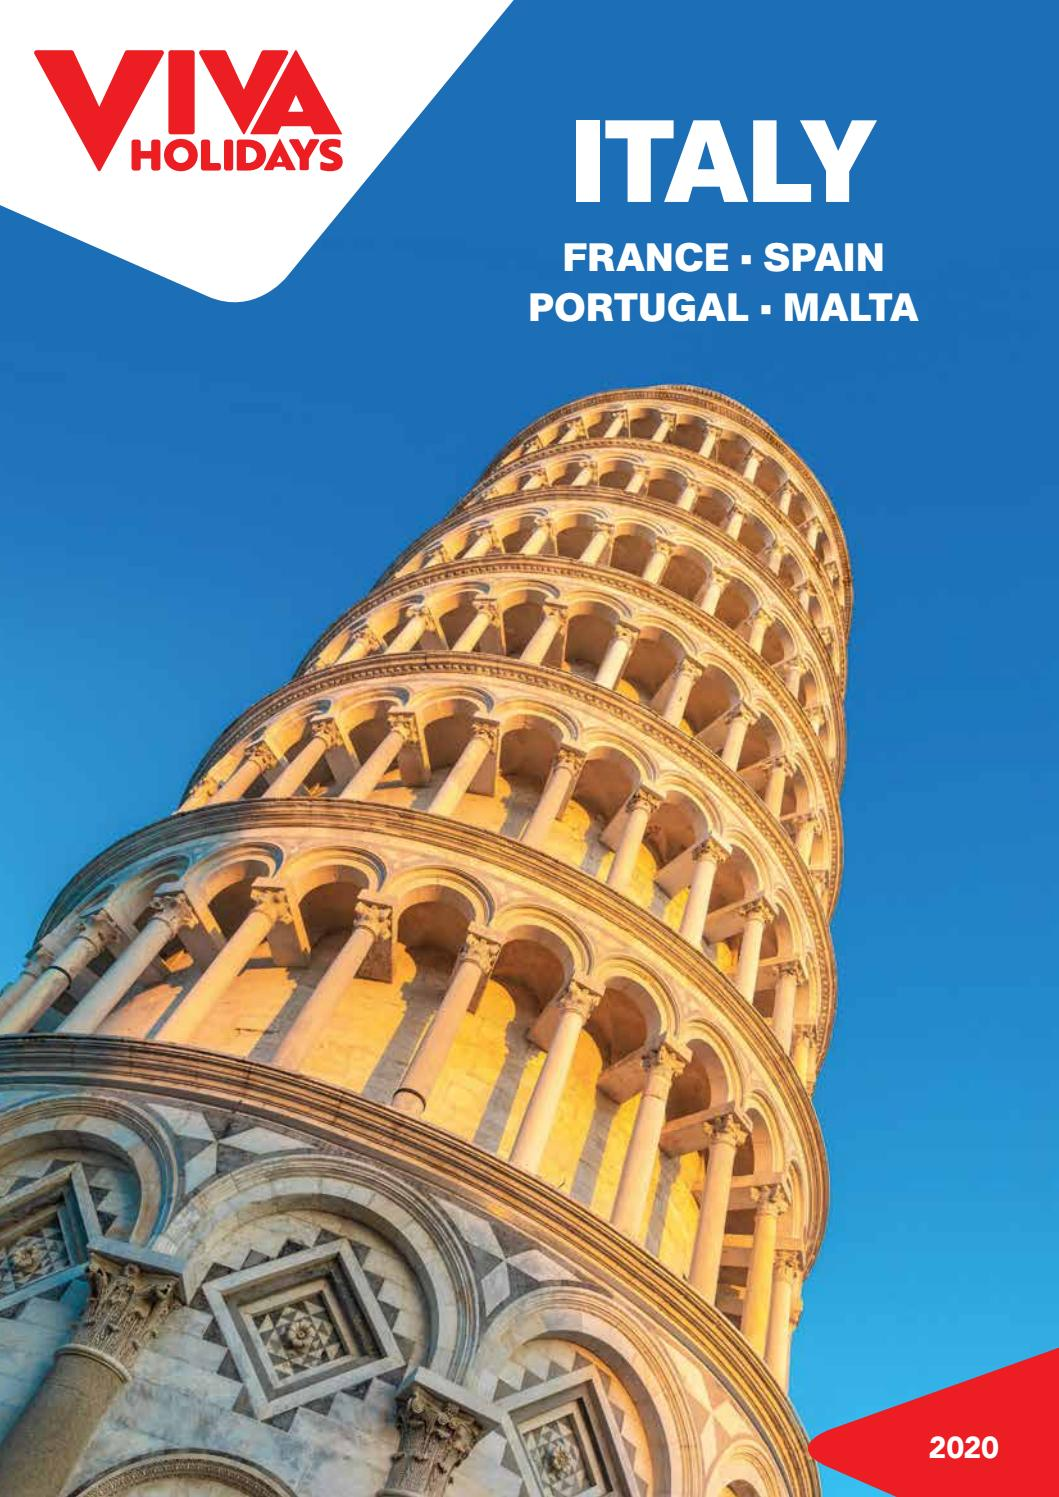 Italy France Spain Portugal Malta 2020 Travel Brochure By Viva Holidays Issuu